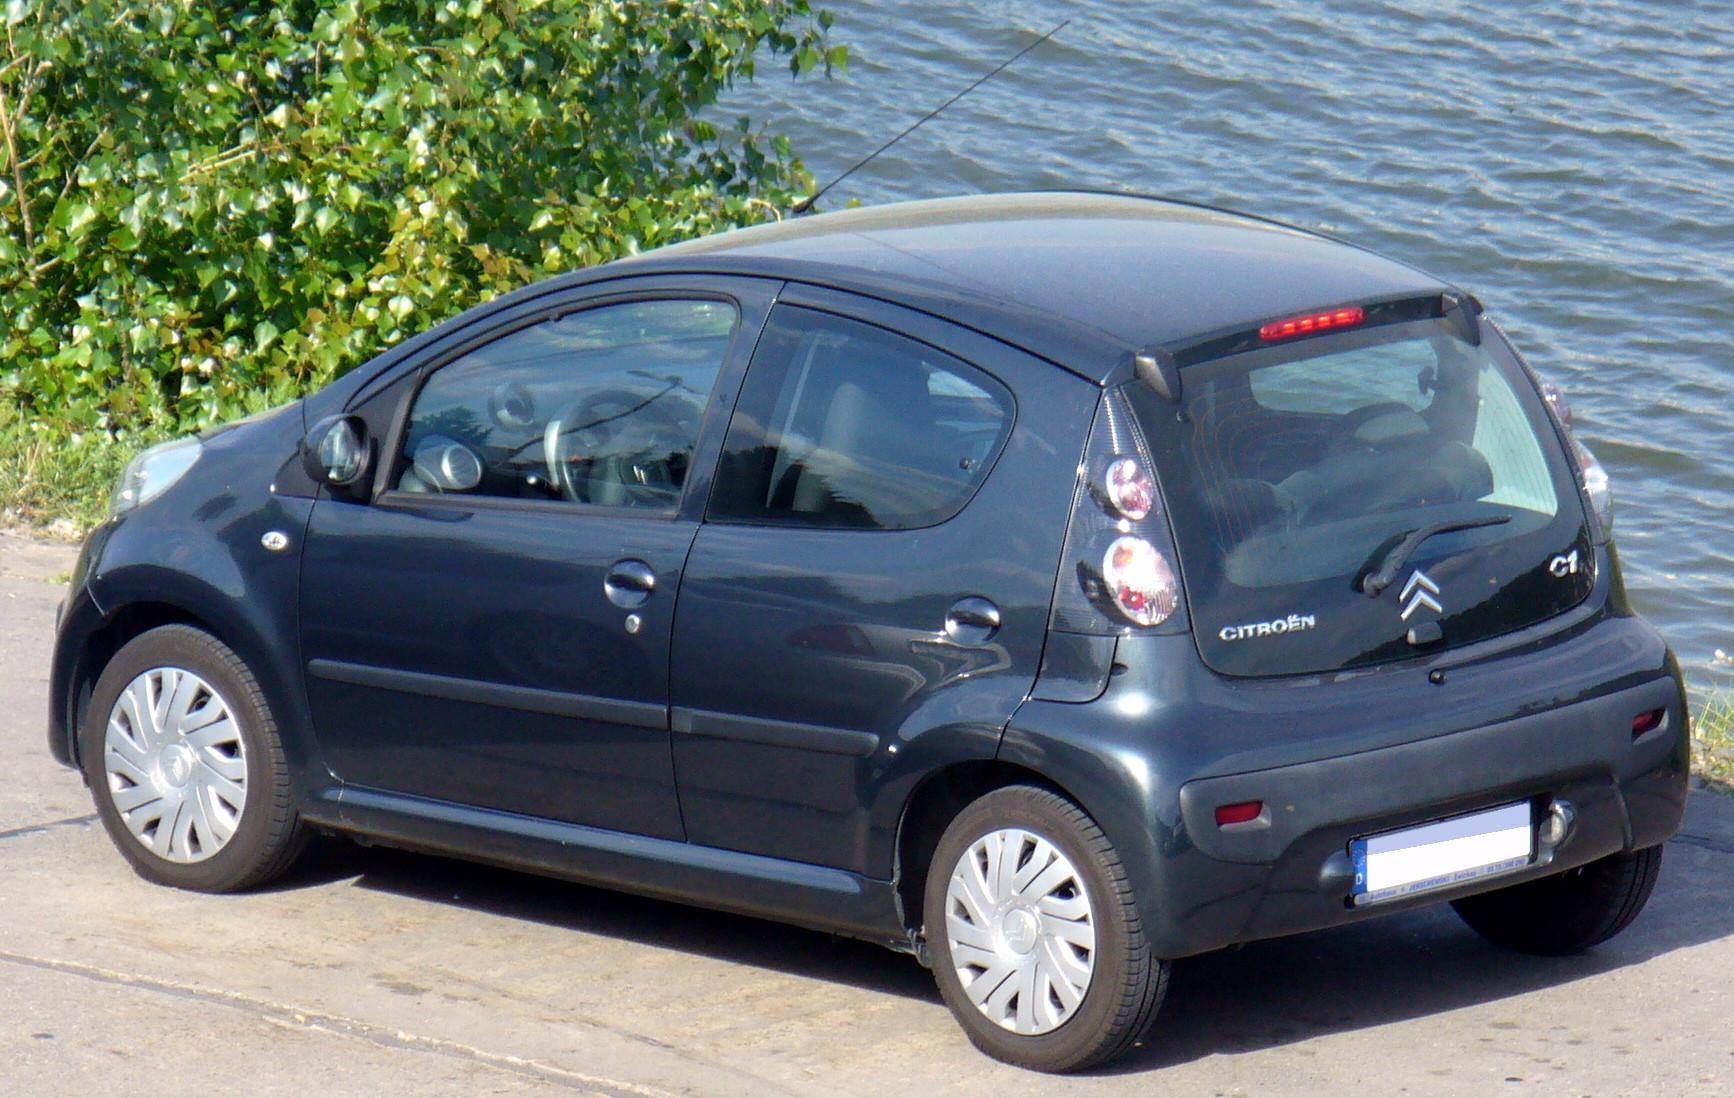 File:Citroen C1.JPG - Wikimedia Commons